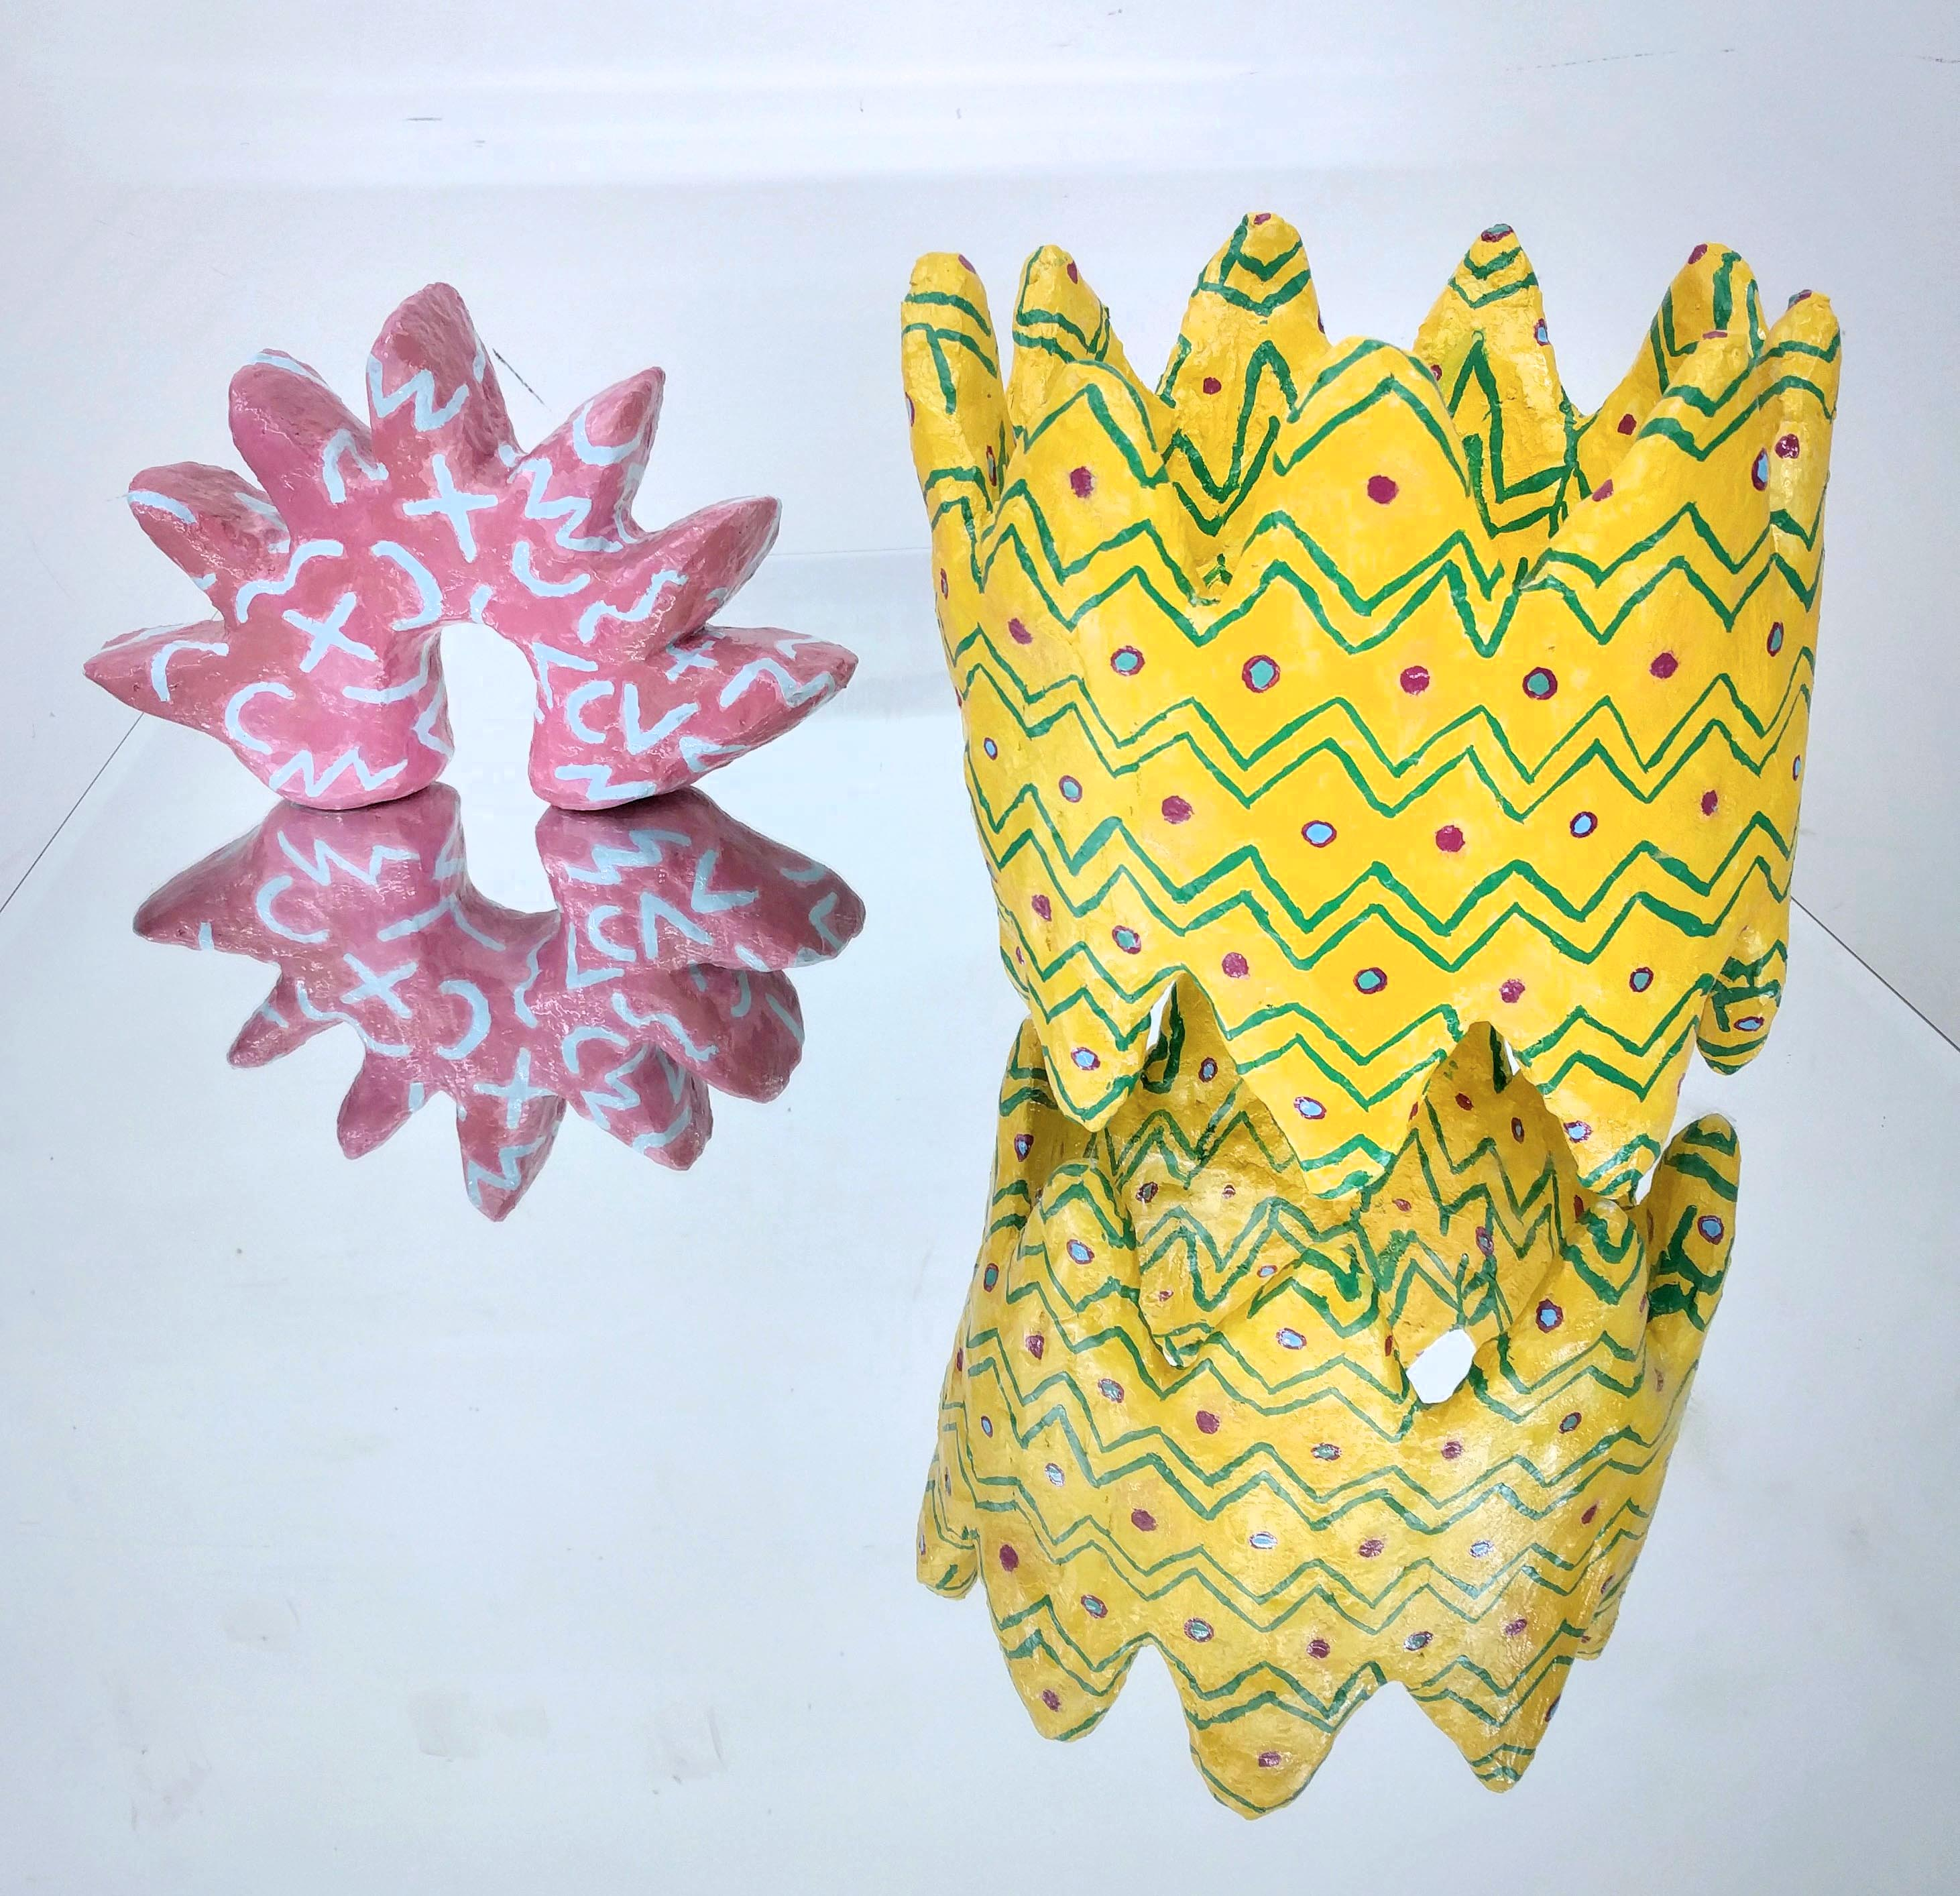 a spikey pink sculpture and yellow crown sculpture hydrocal